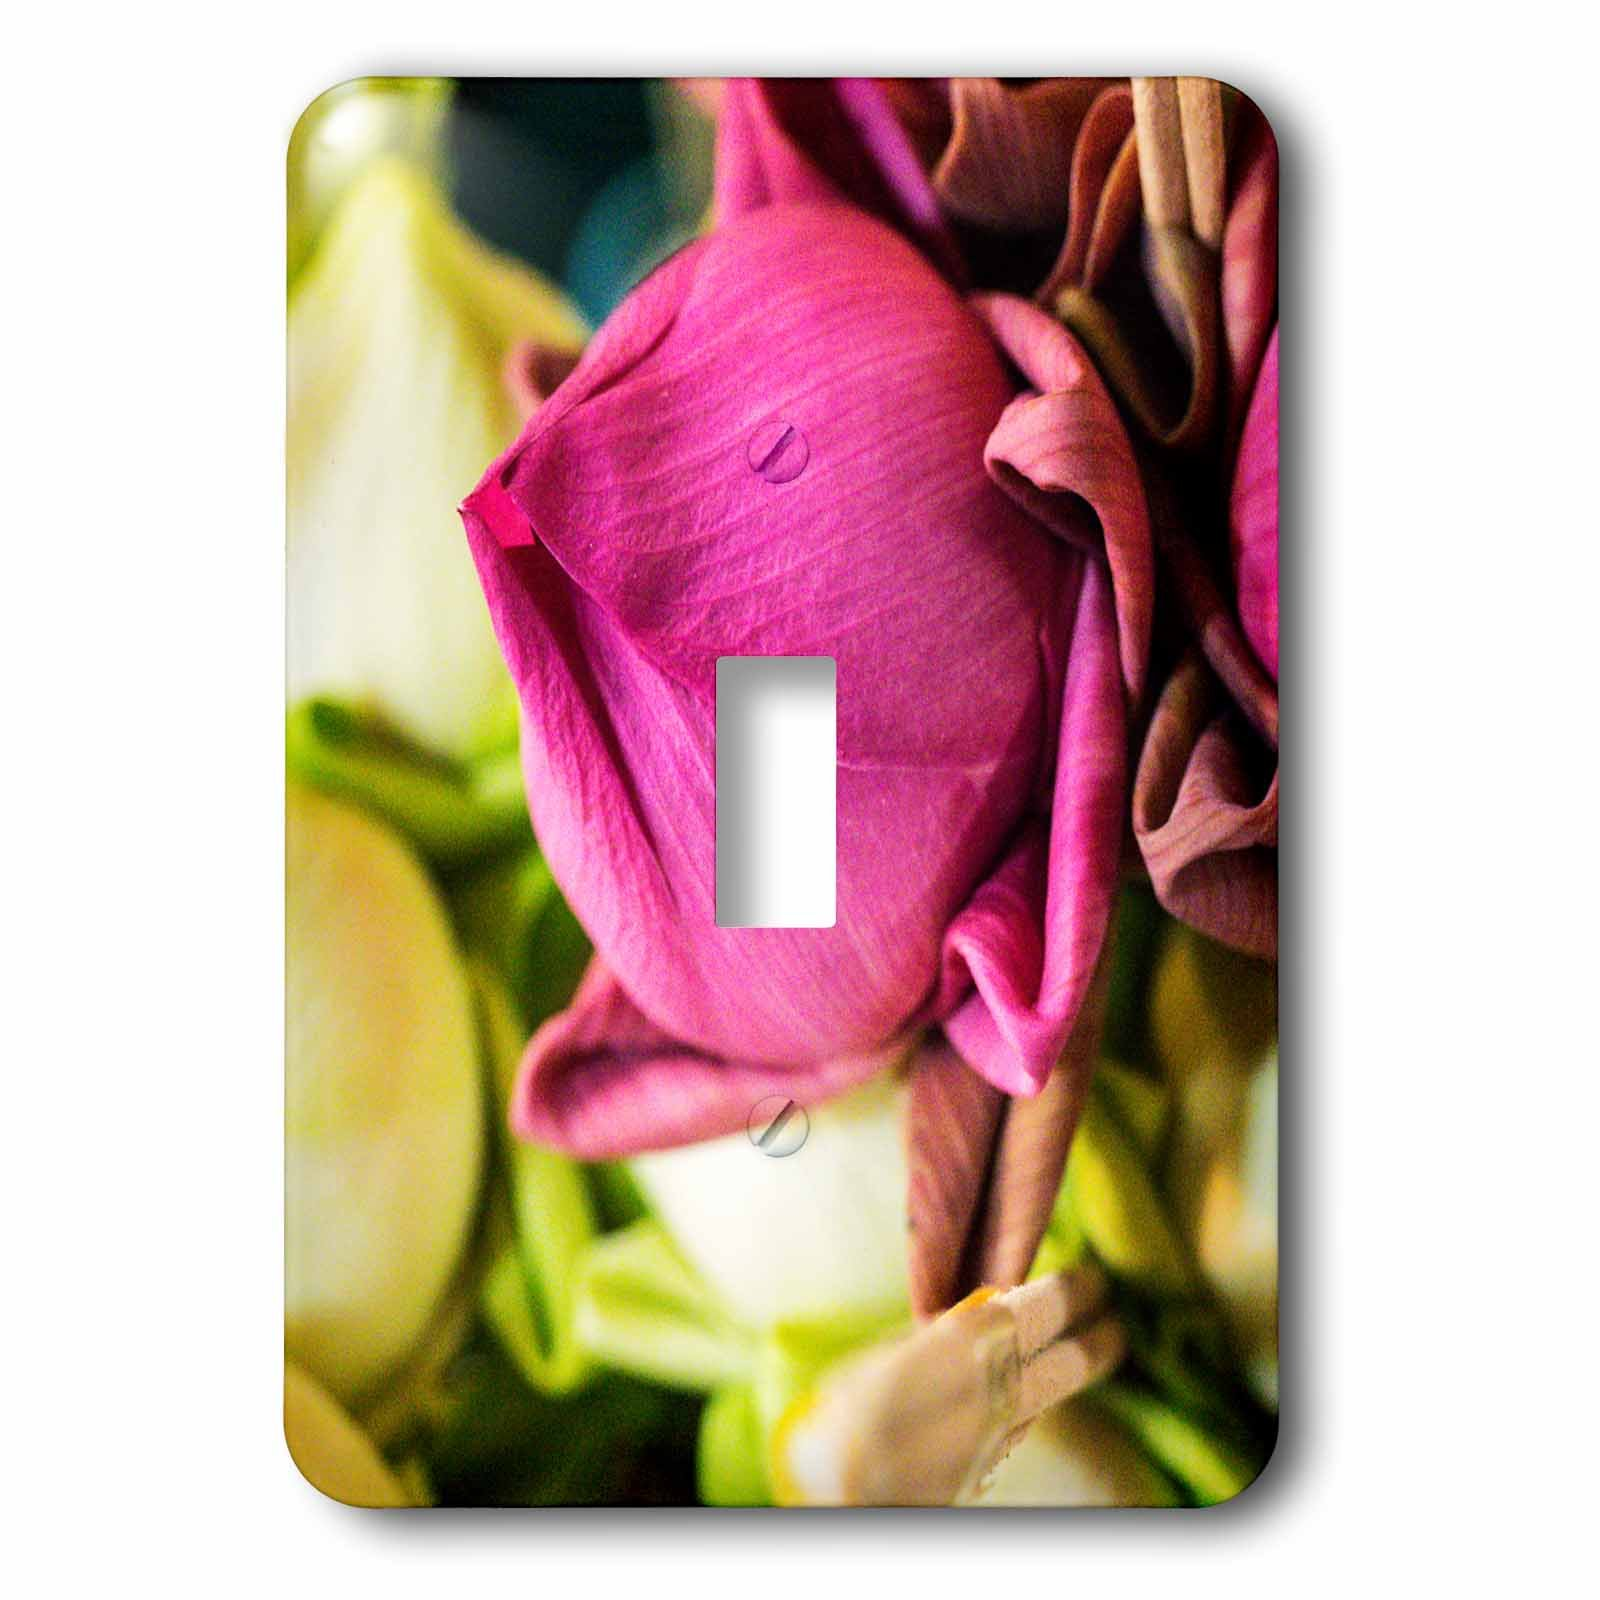 3dRose Danita Delimont - Flowers - Thailand, Chiang Mai, Flowers at the Thai Market Place - Light Switch Covers - single toggle switch (lsp_276974_1) by 3dRose